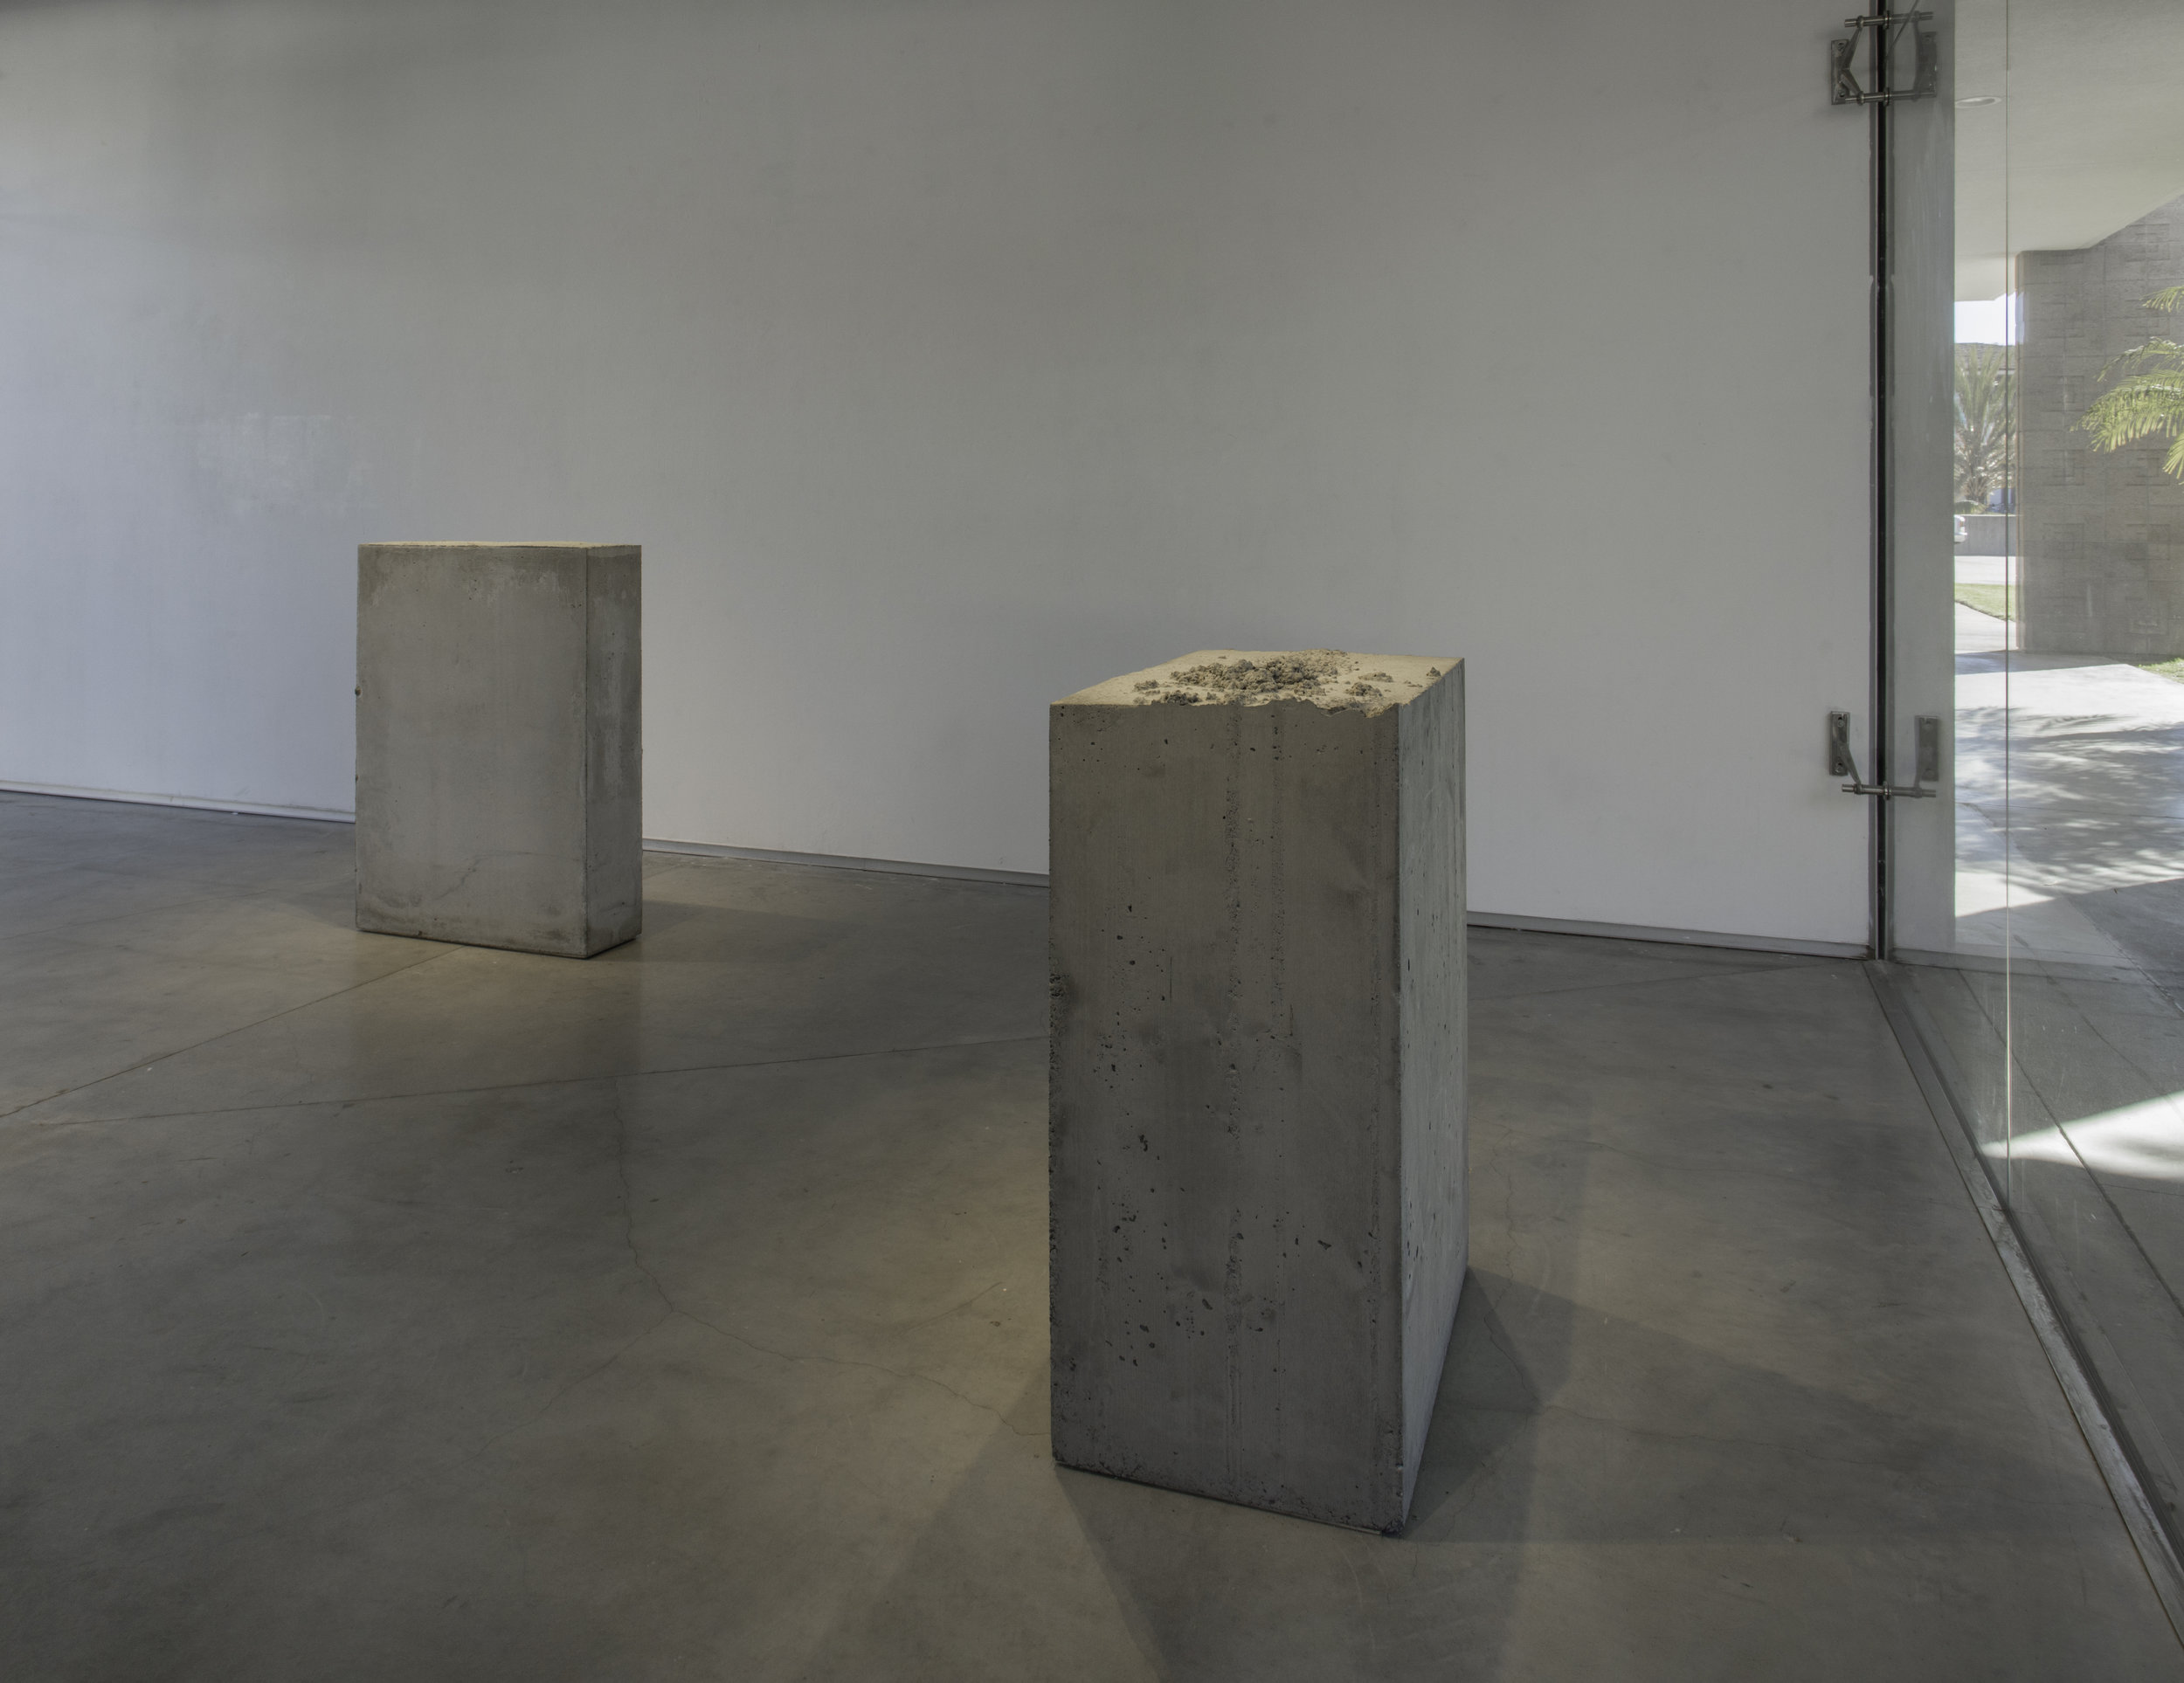 Lara Favaretto,  Fisting  and  Boring , 2012, Concrete, Courtesy Museum of Contemporary Art Santa Barbara. Photo: Brian Forrest